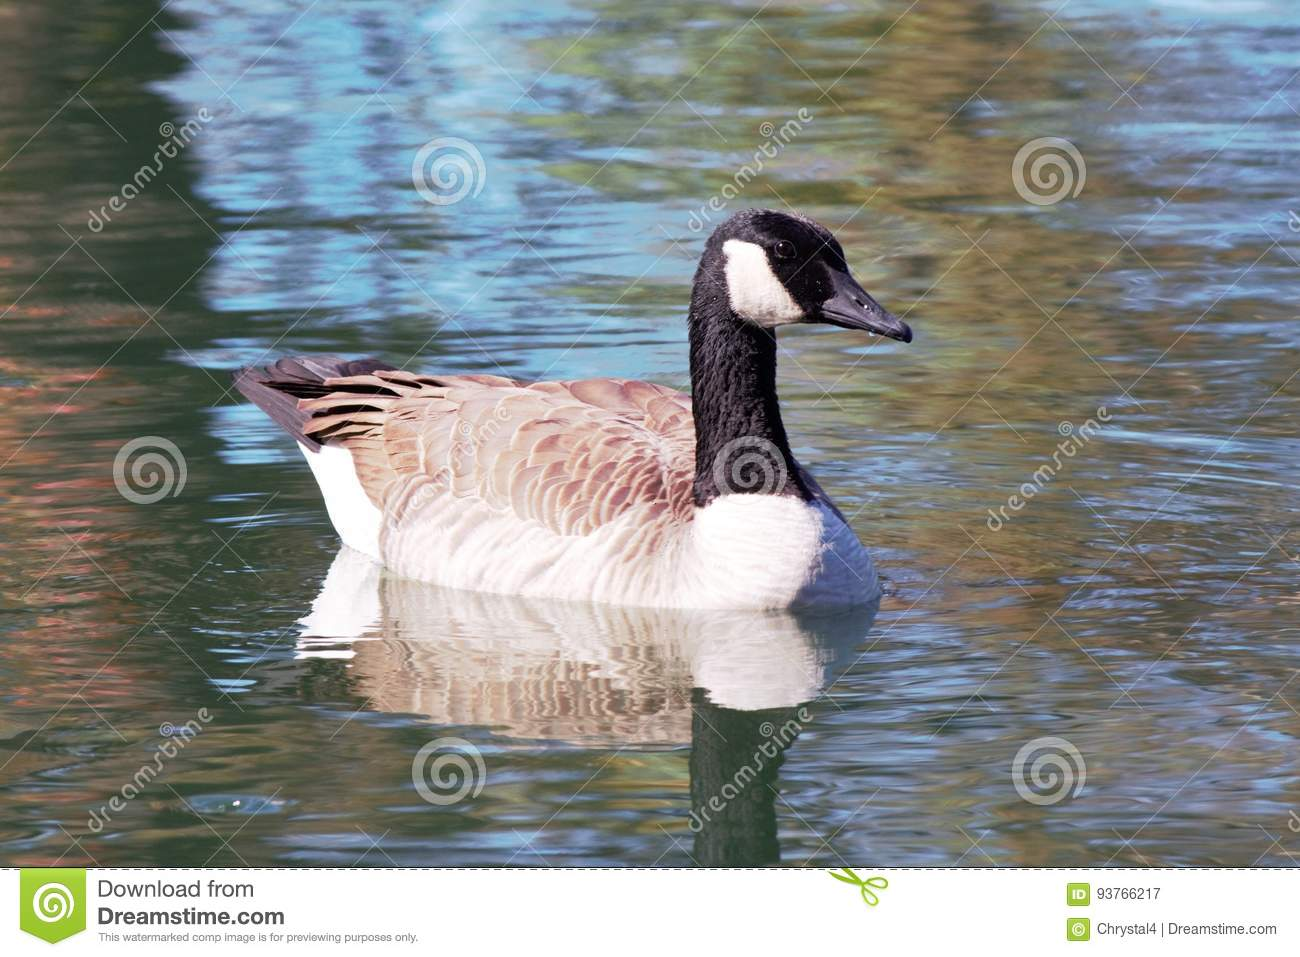 Goose floating on a calm pond